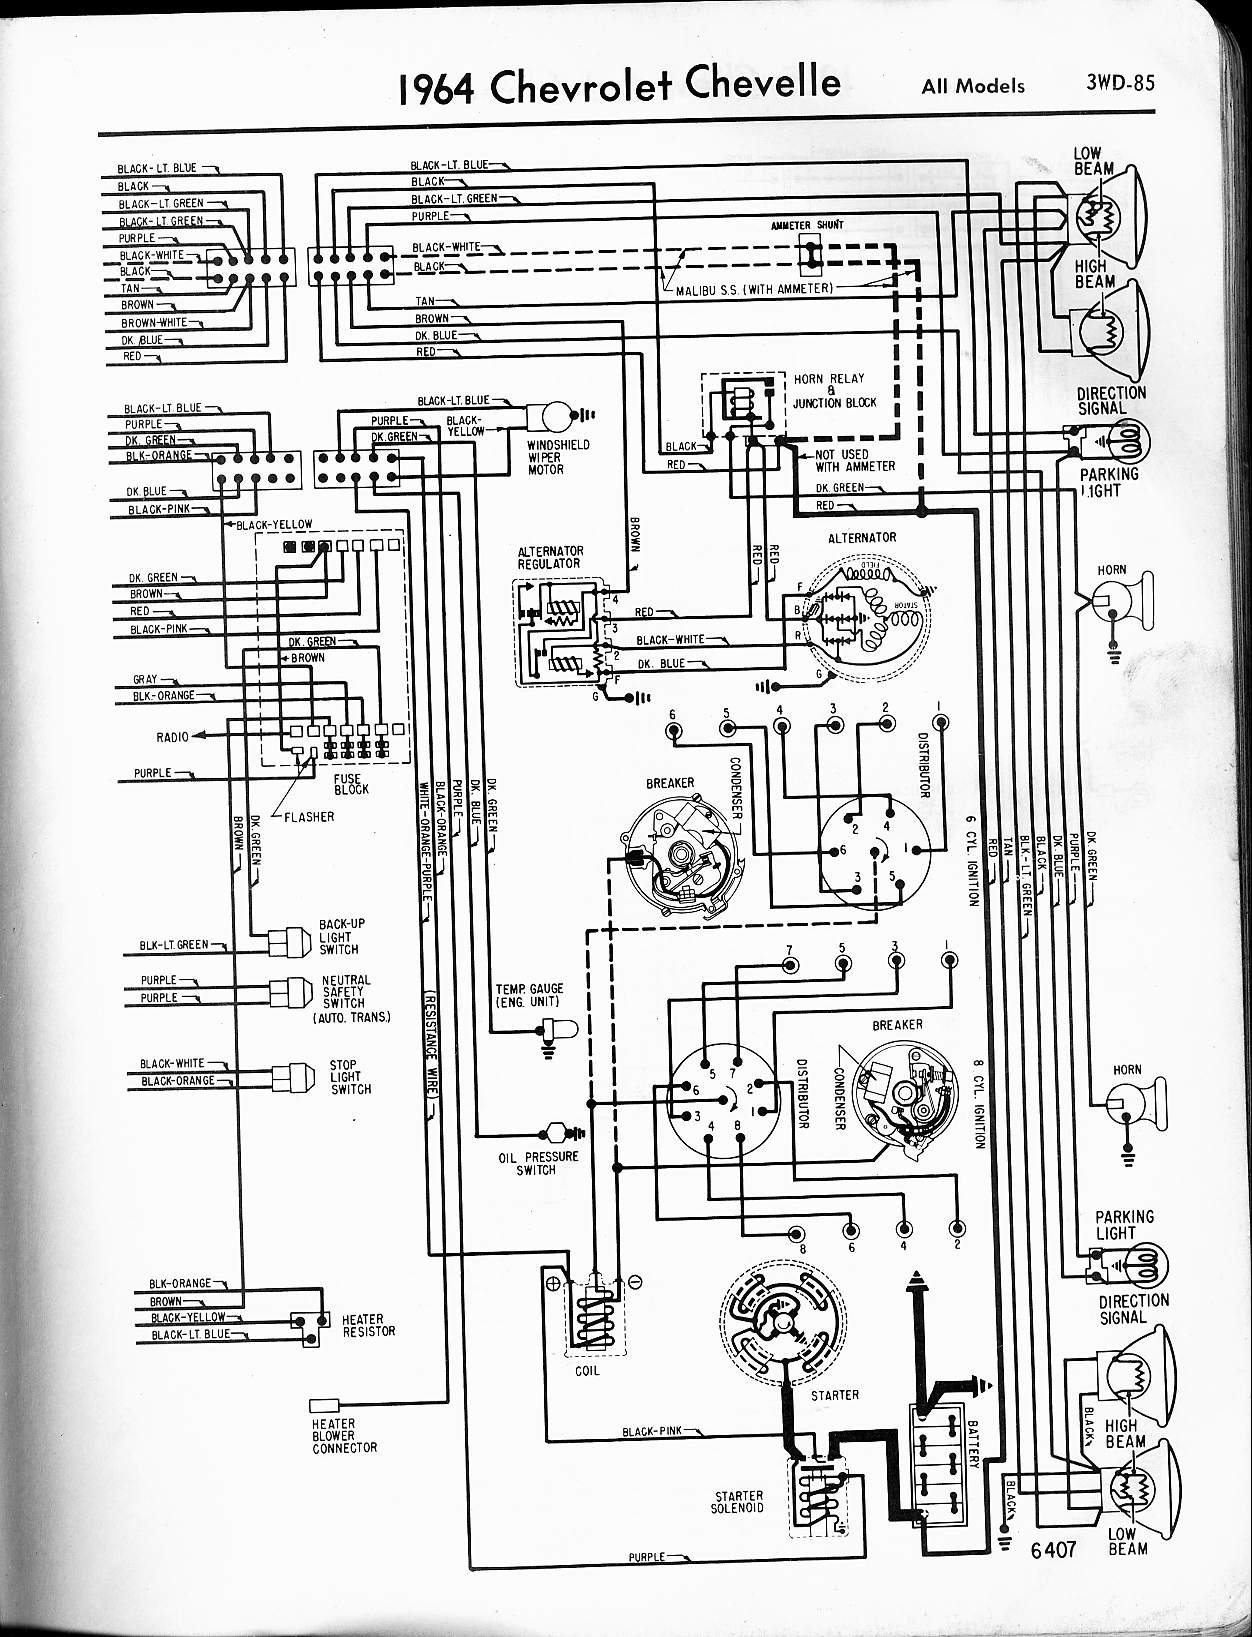 MWireChev64_3WD 085 chevy diagrams 1969 mustang alternator wiring diagram at eliteediting.co